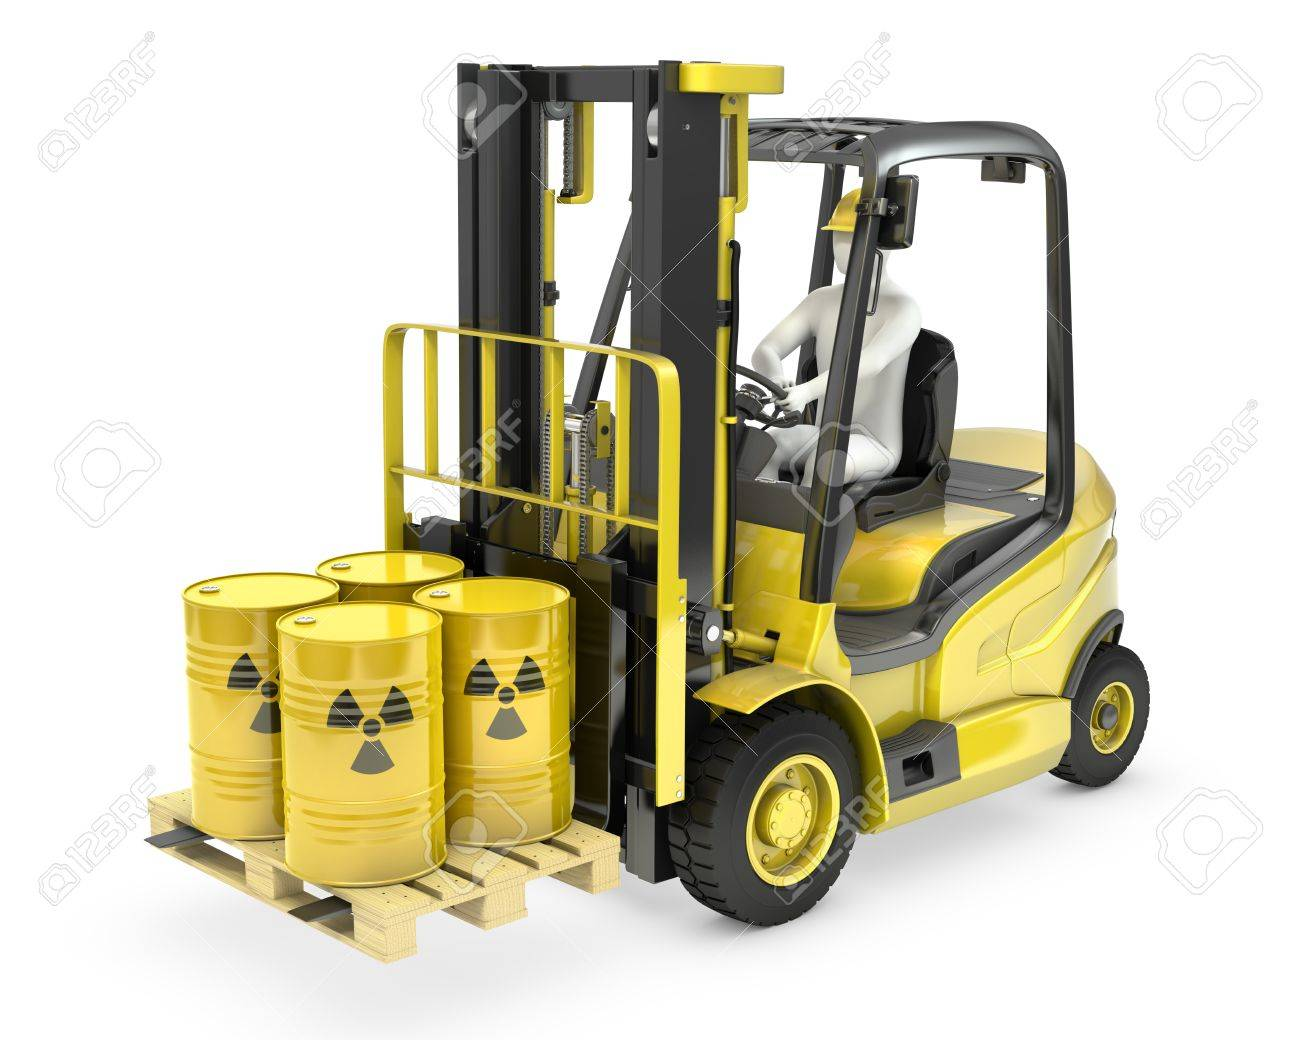 Fork lift truck with radioactive barrels, isolated on white background Stock Photo - 14839960